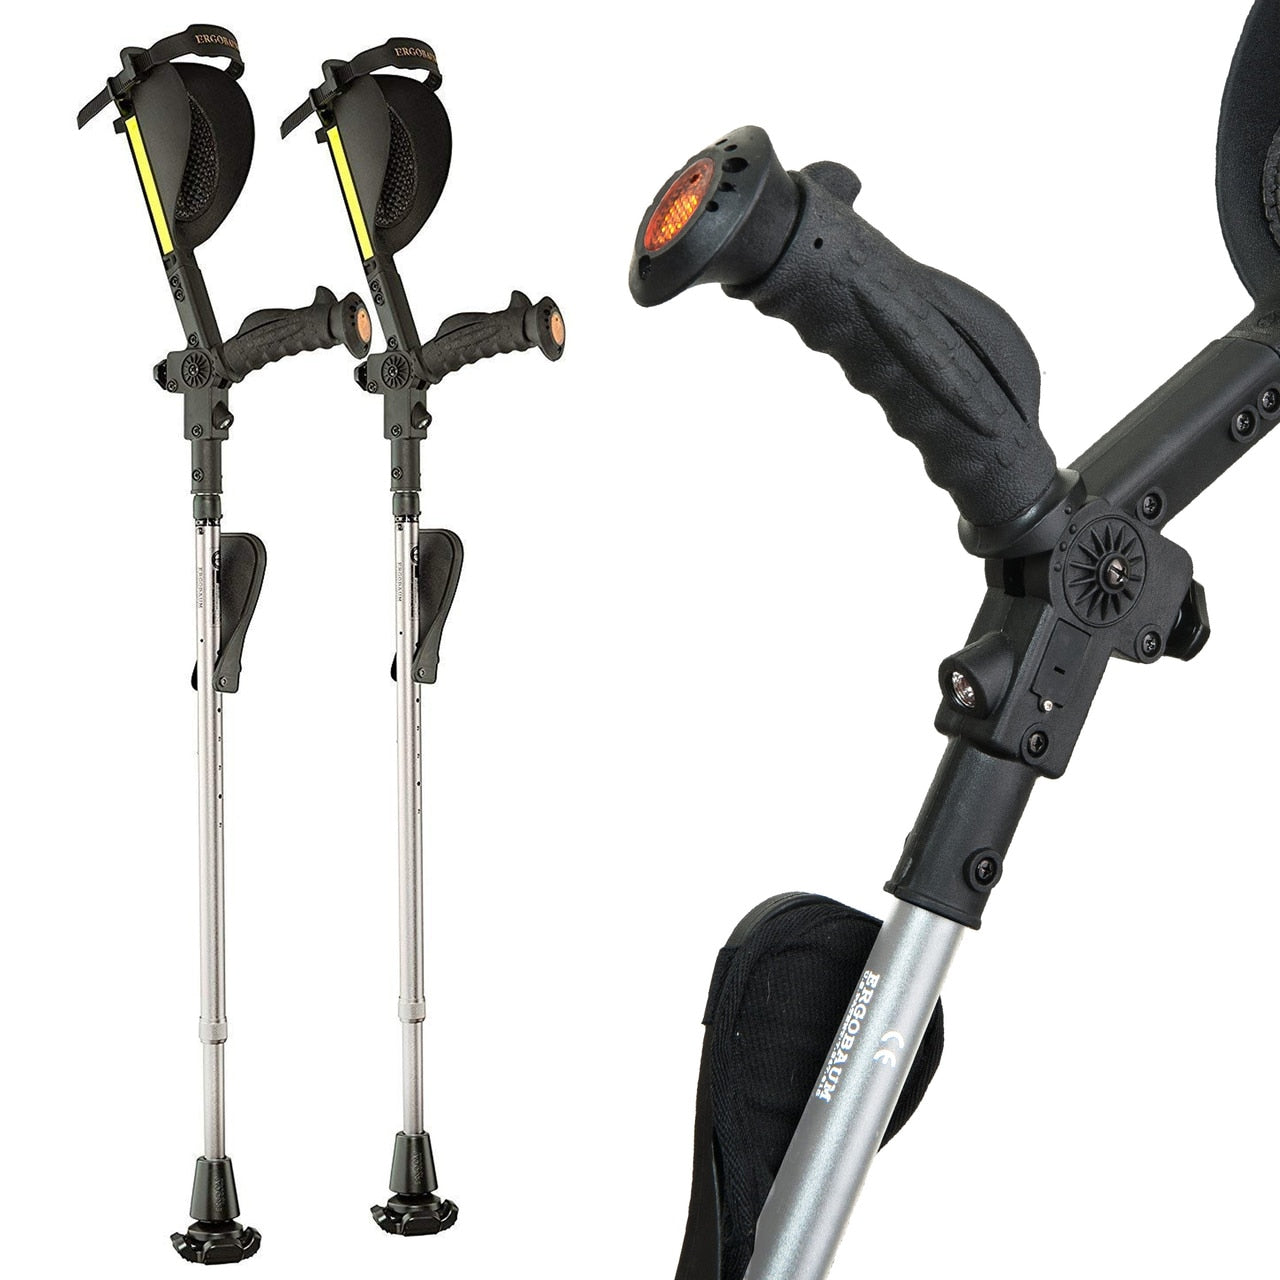 Ergobaum 7G Long Term Folding Ergonomic Shock-Absorbing Crutches (Pair)